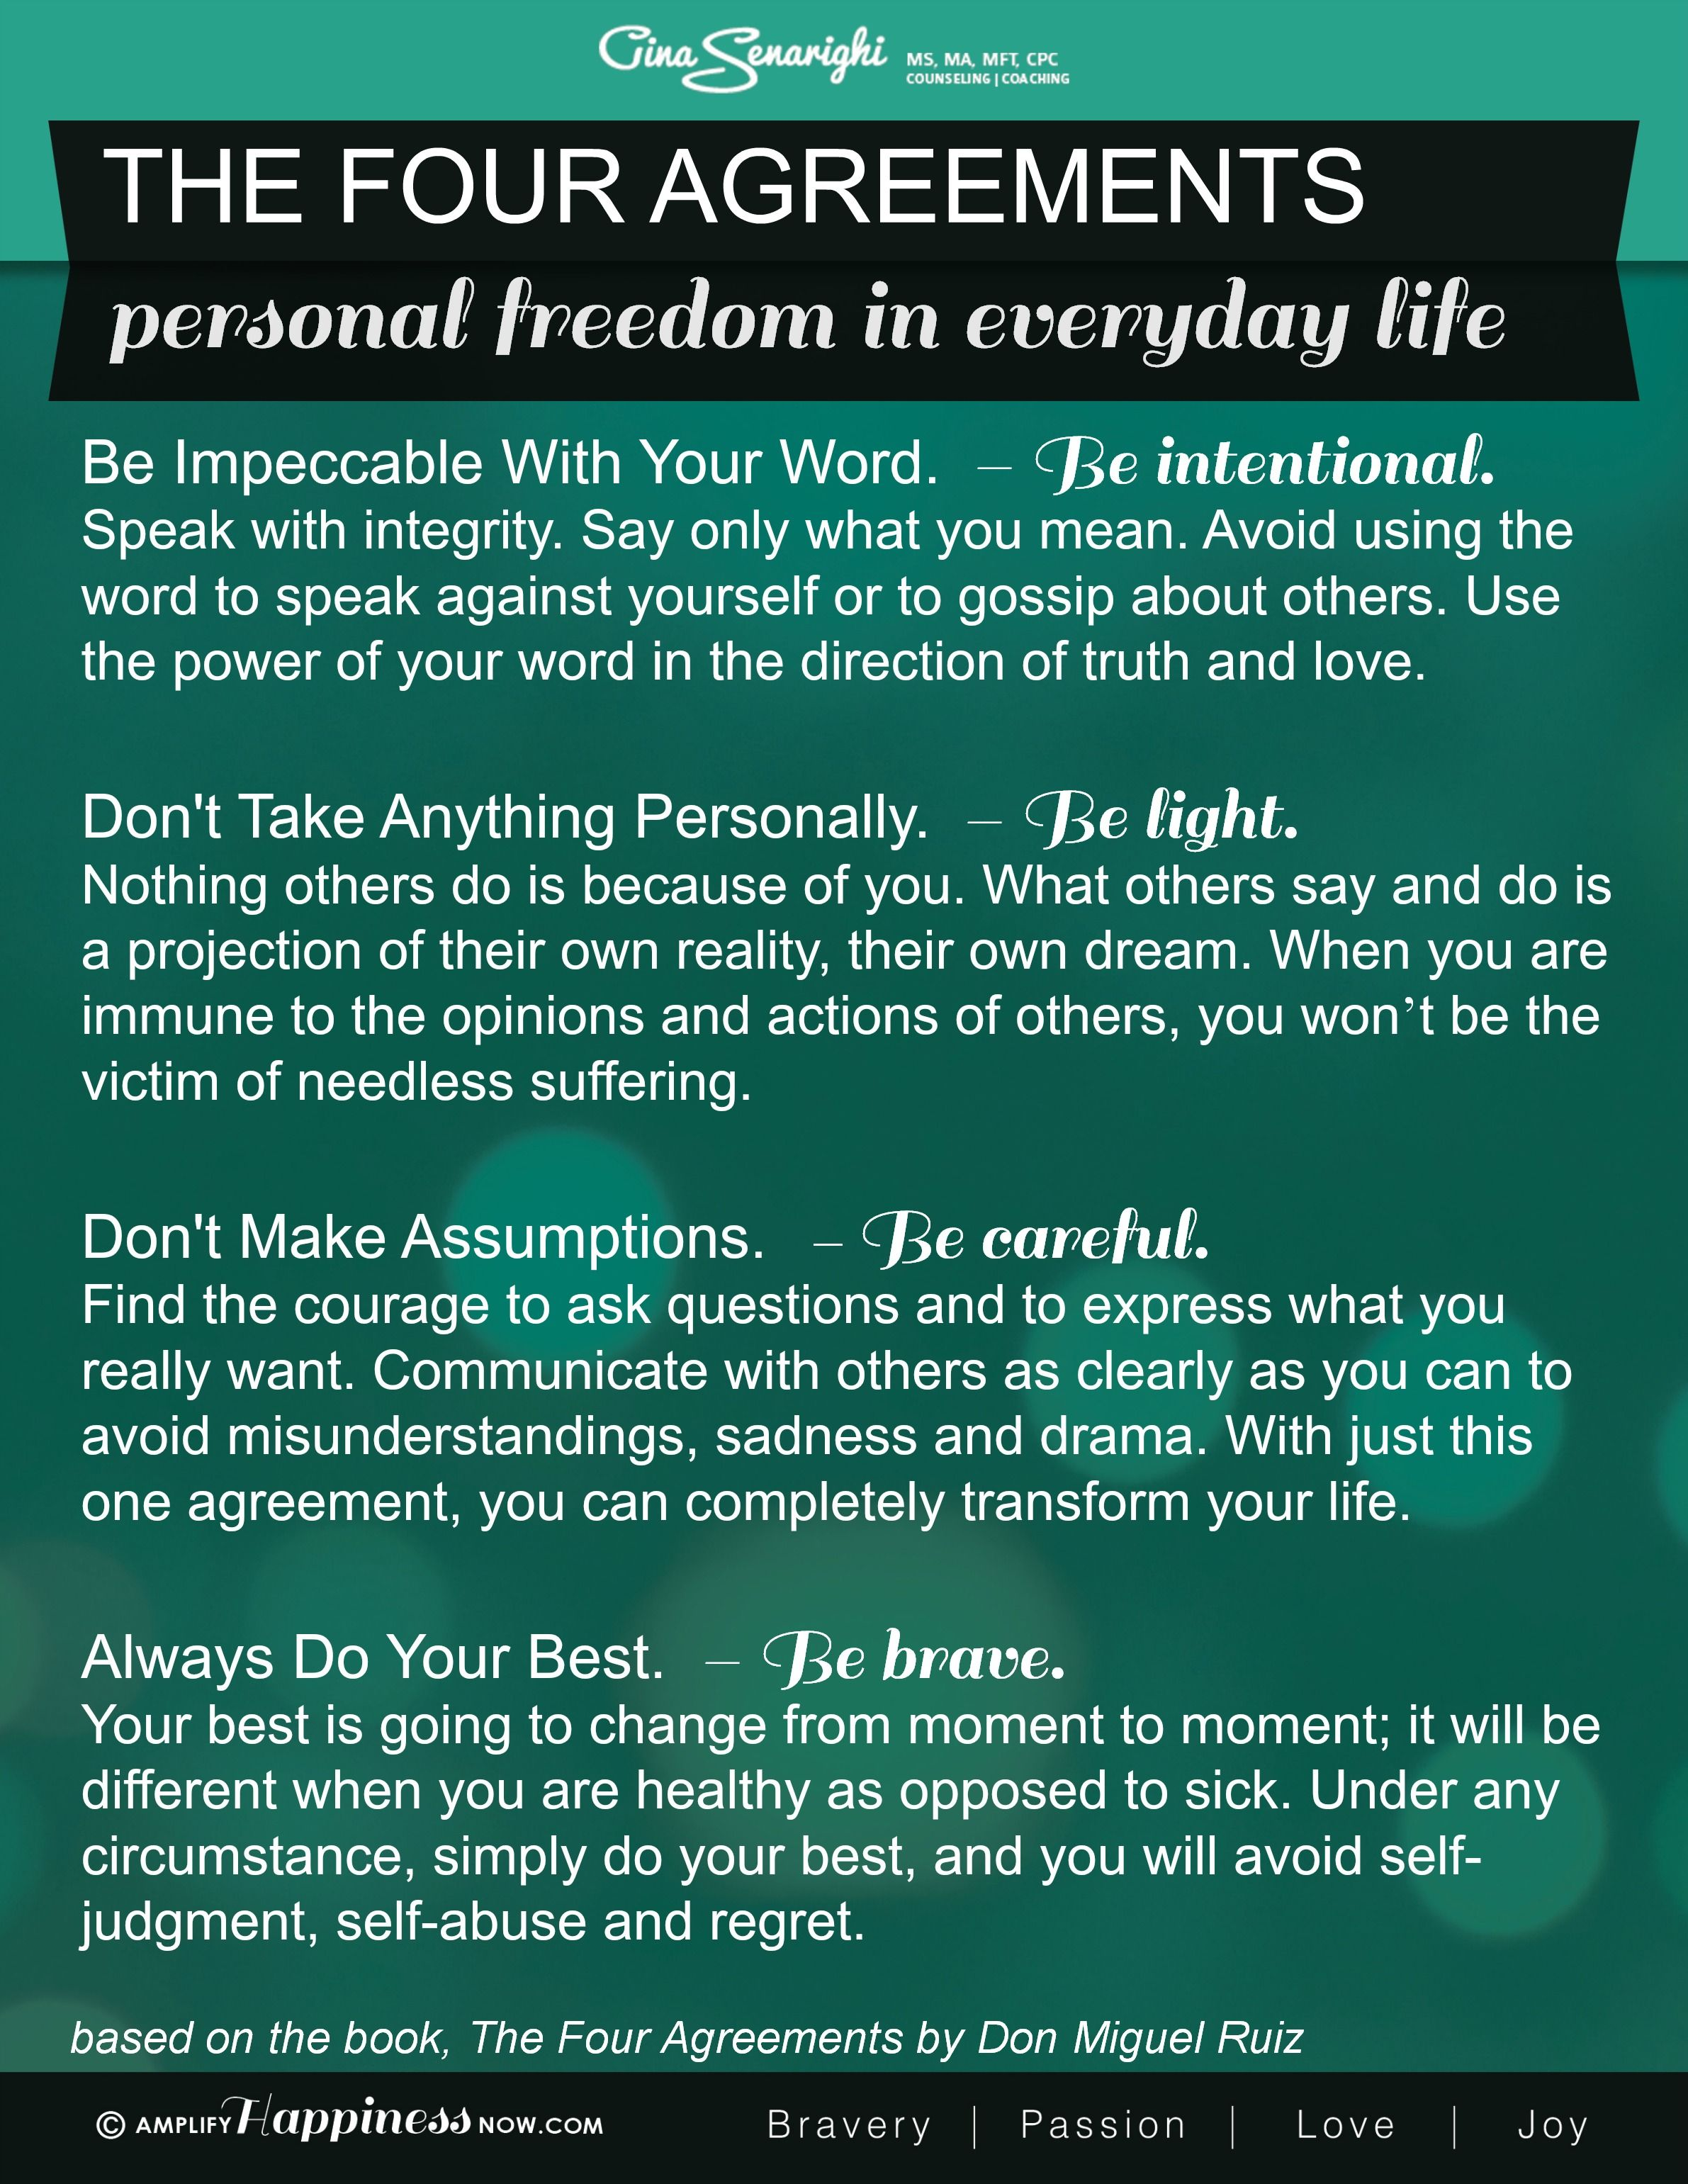 Top 10 Quotes from The Four Agreements by Don Miguel Ruiz